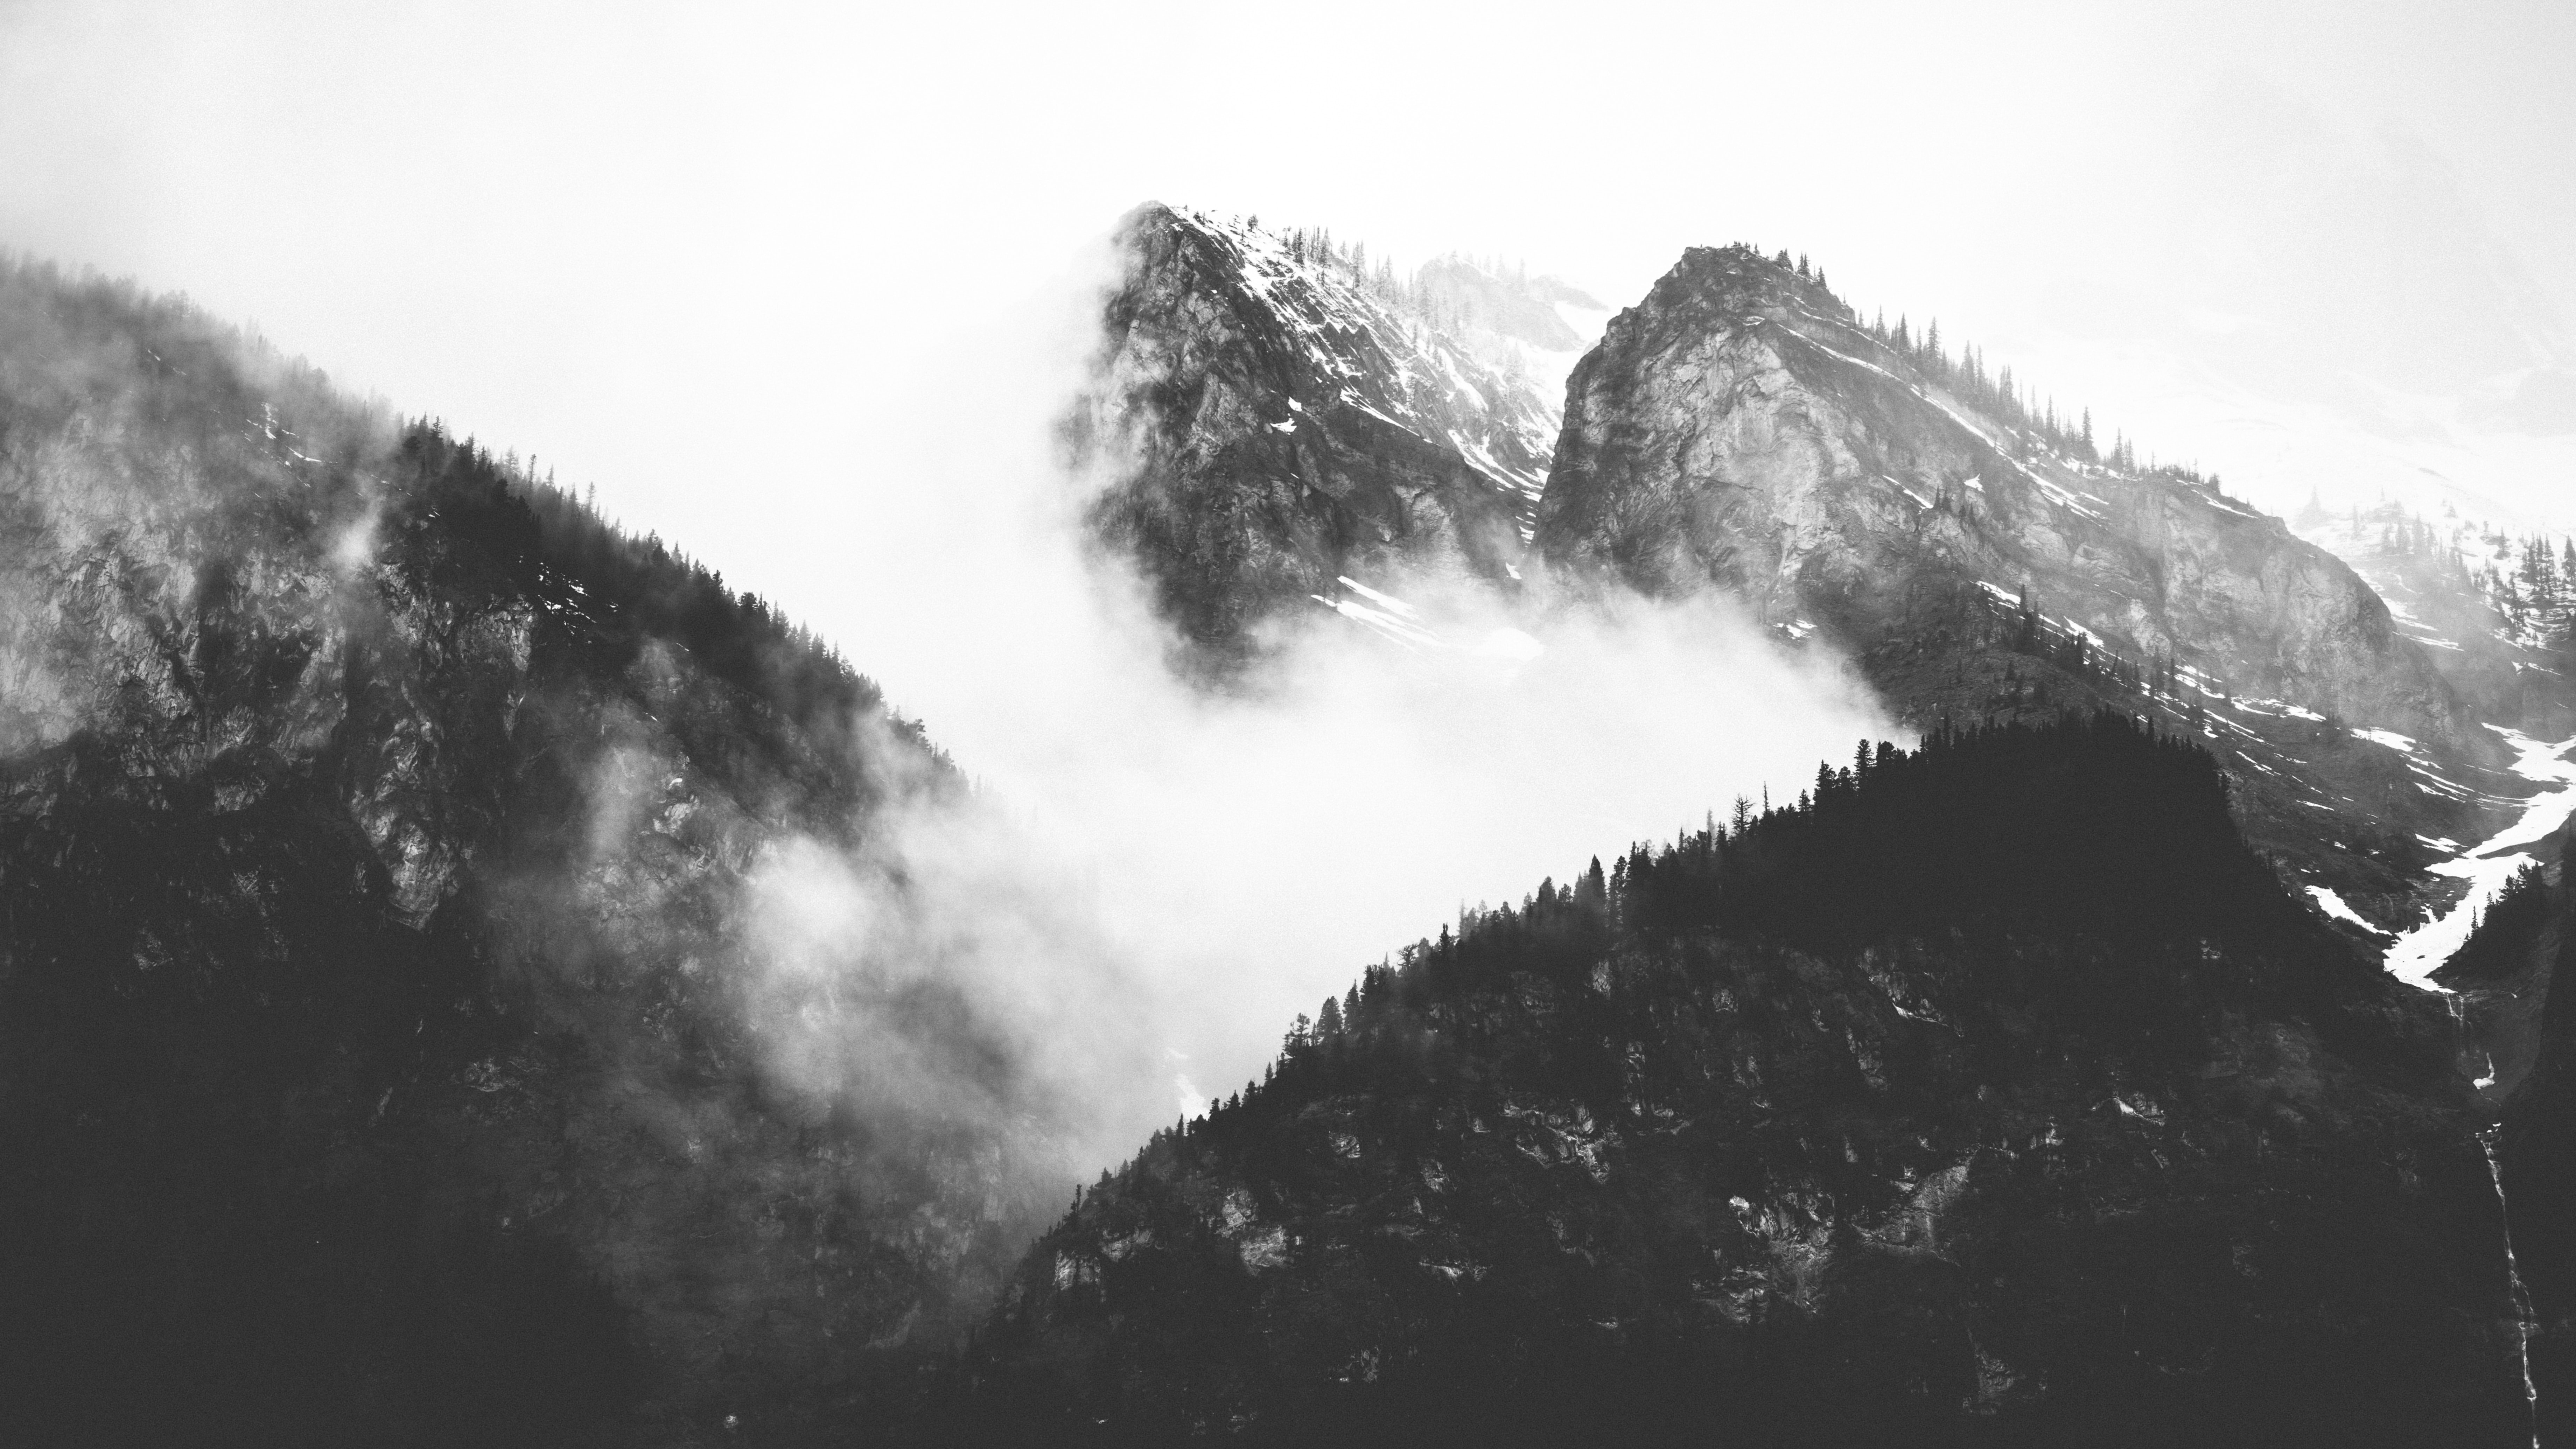 Black and white image of foggy mountains with pine tree silhouettes